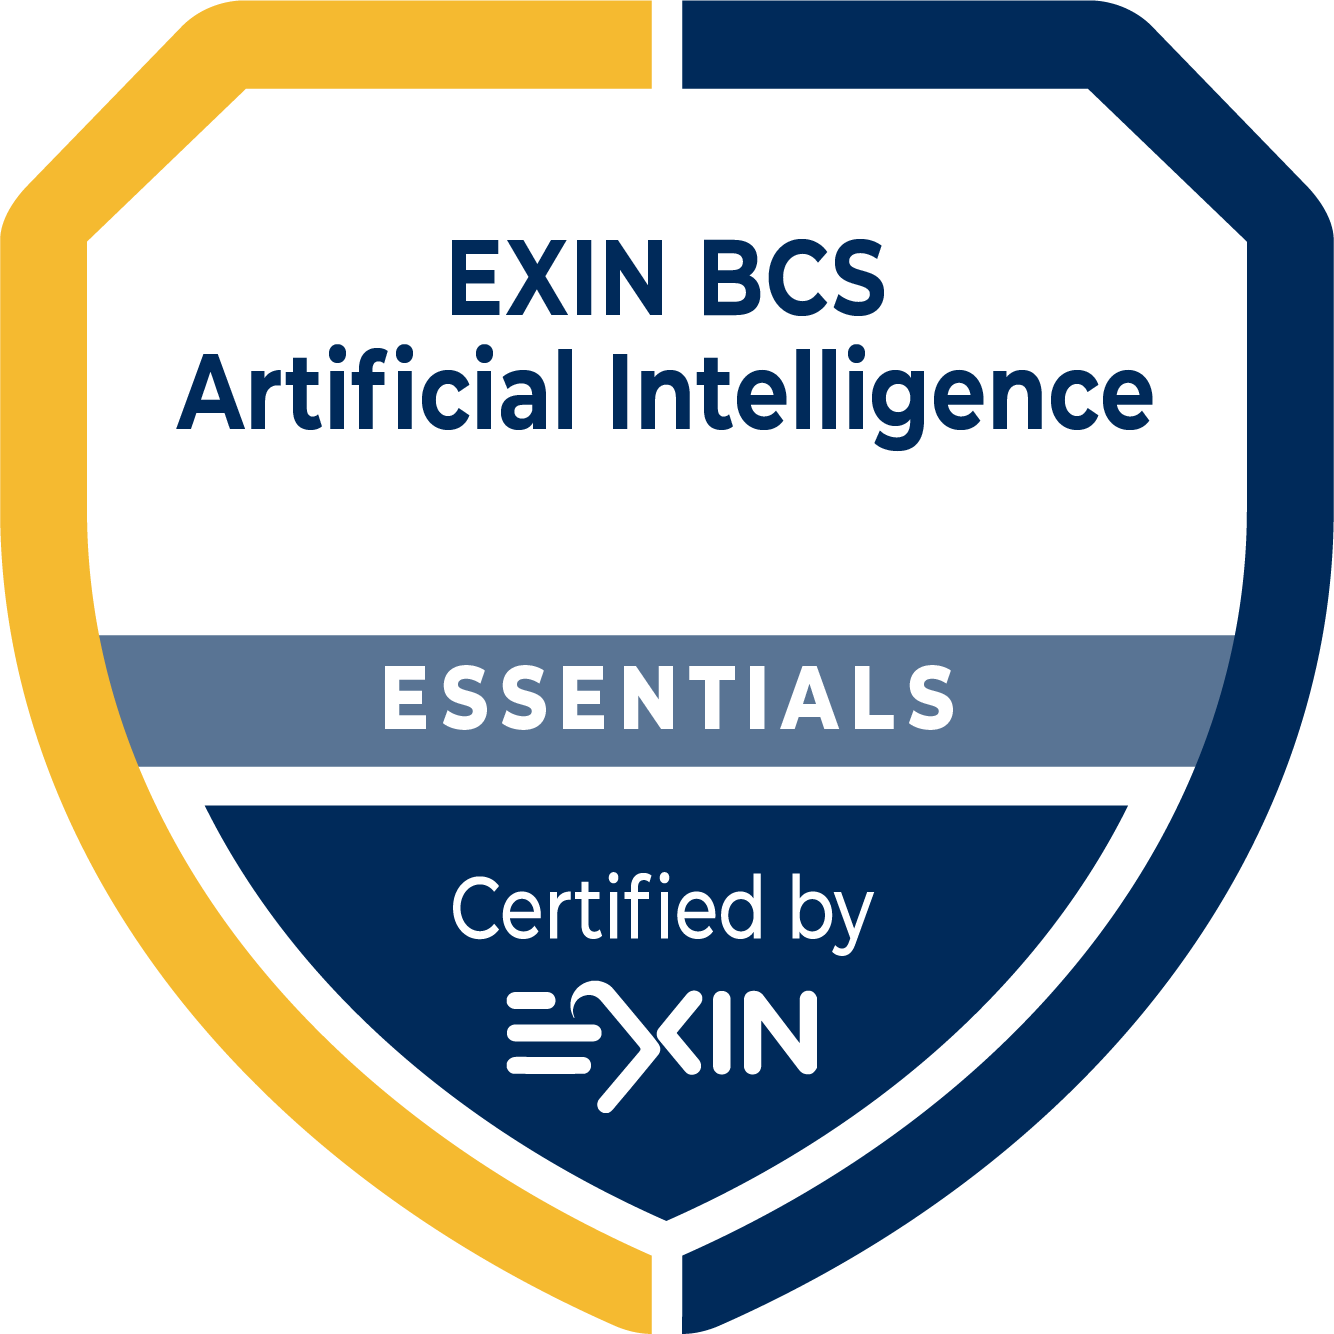 EXIN BCS Artificial Intelligence Essentials